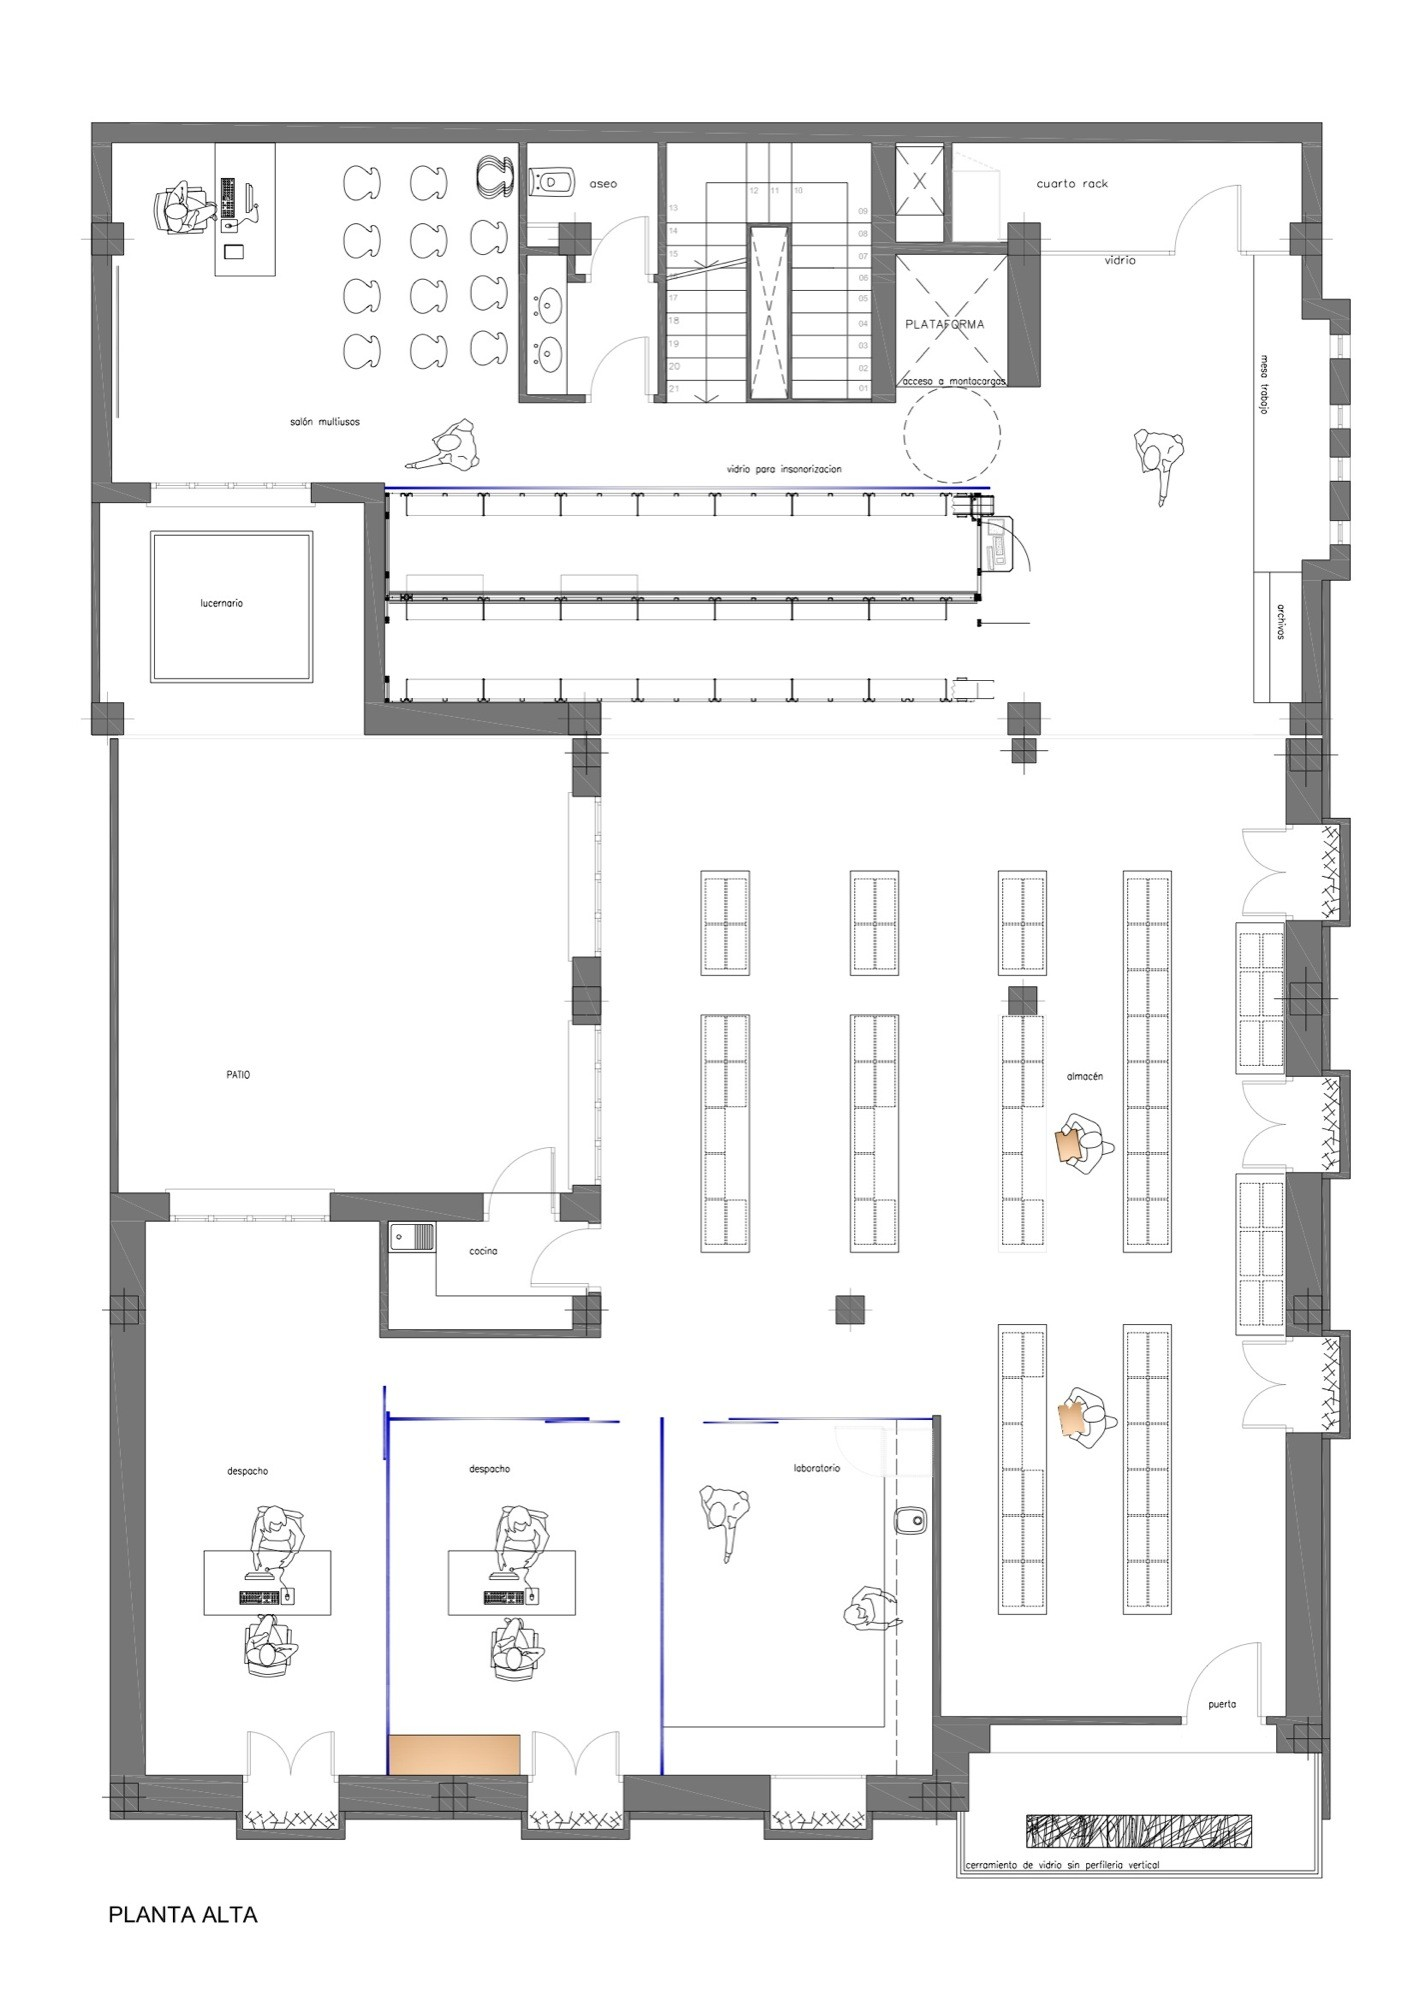 500 Sq Ft Apartment Floor Plan Gallery Of Caparr 243 S And Reina Pharmacy Mobil M 13